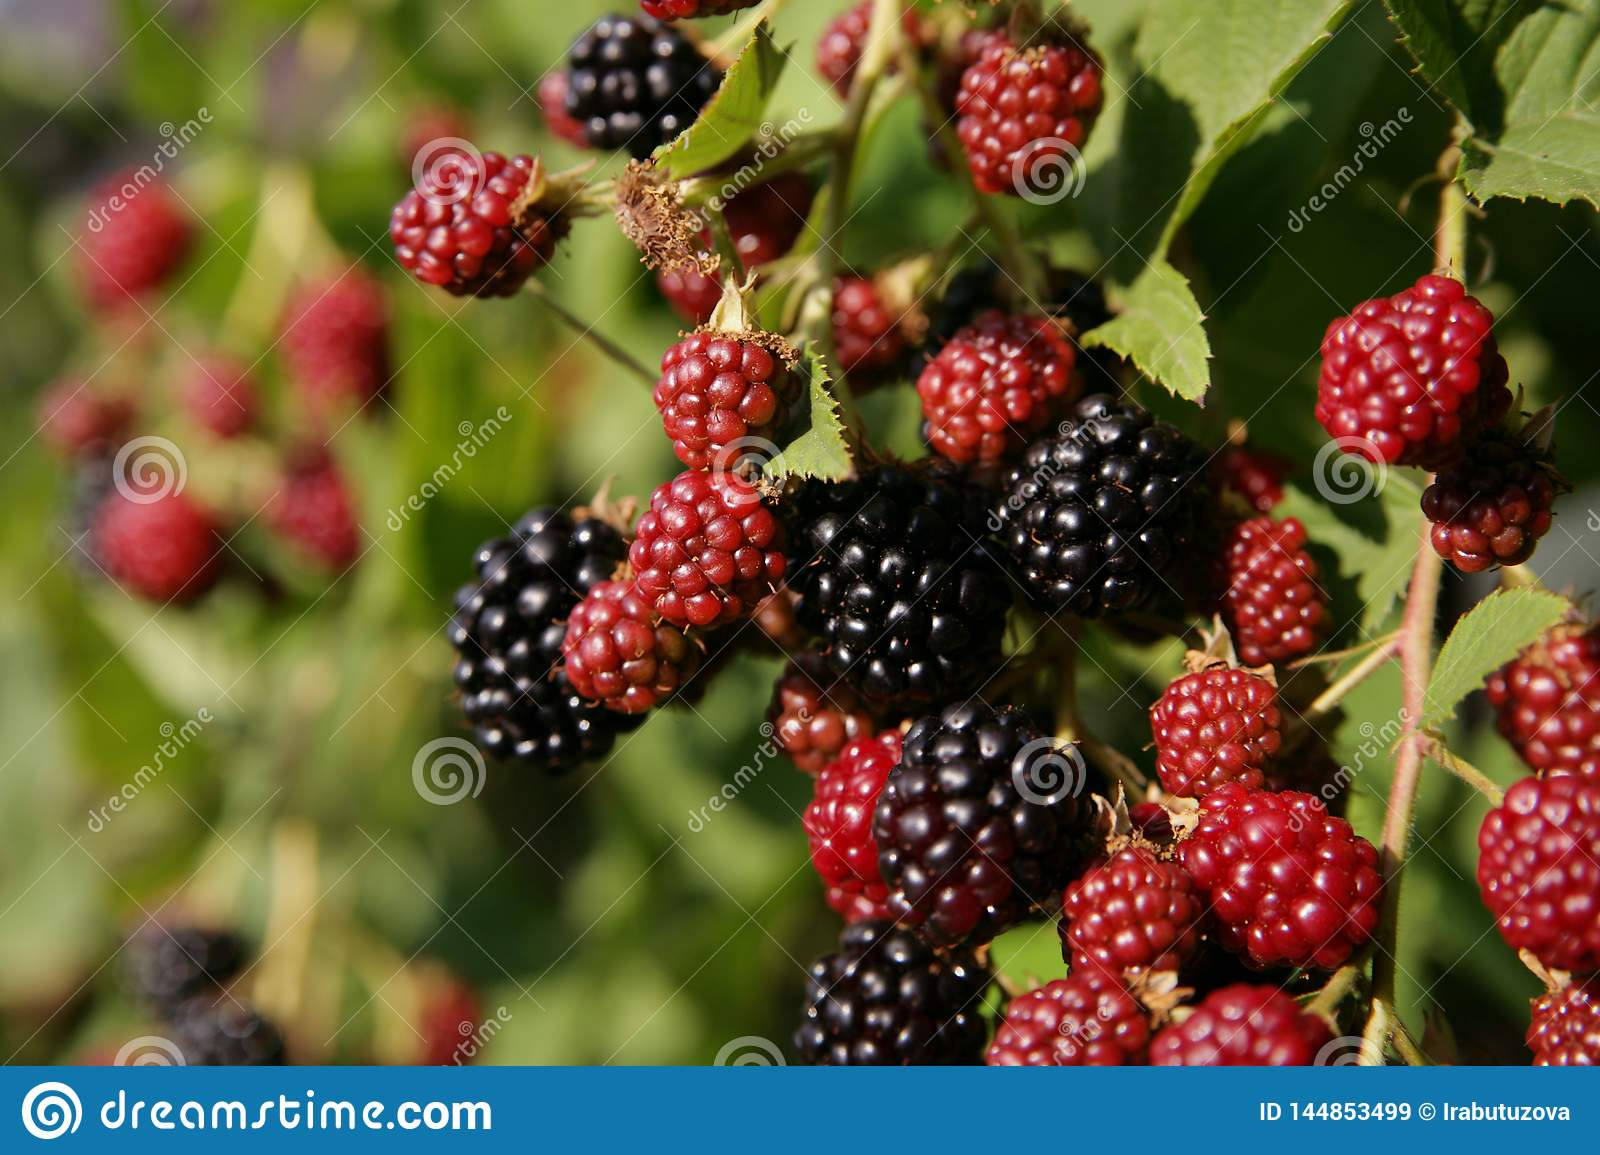 On the bushes grows juicy ripe and immature blackberries